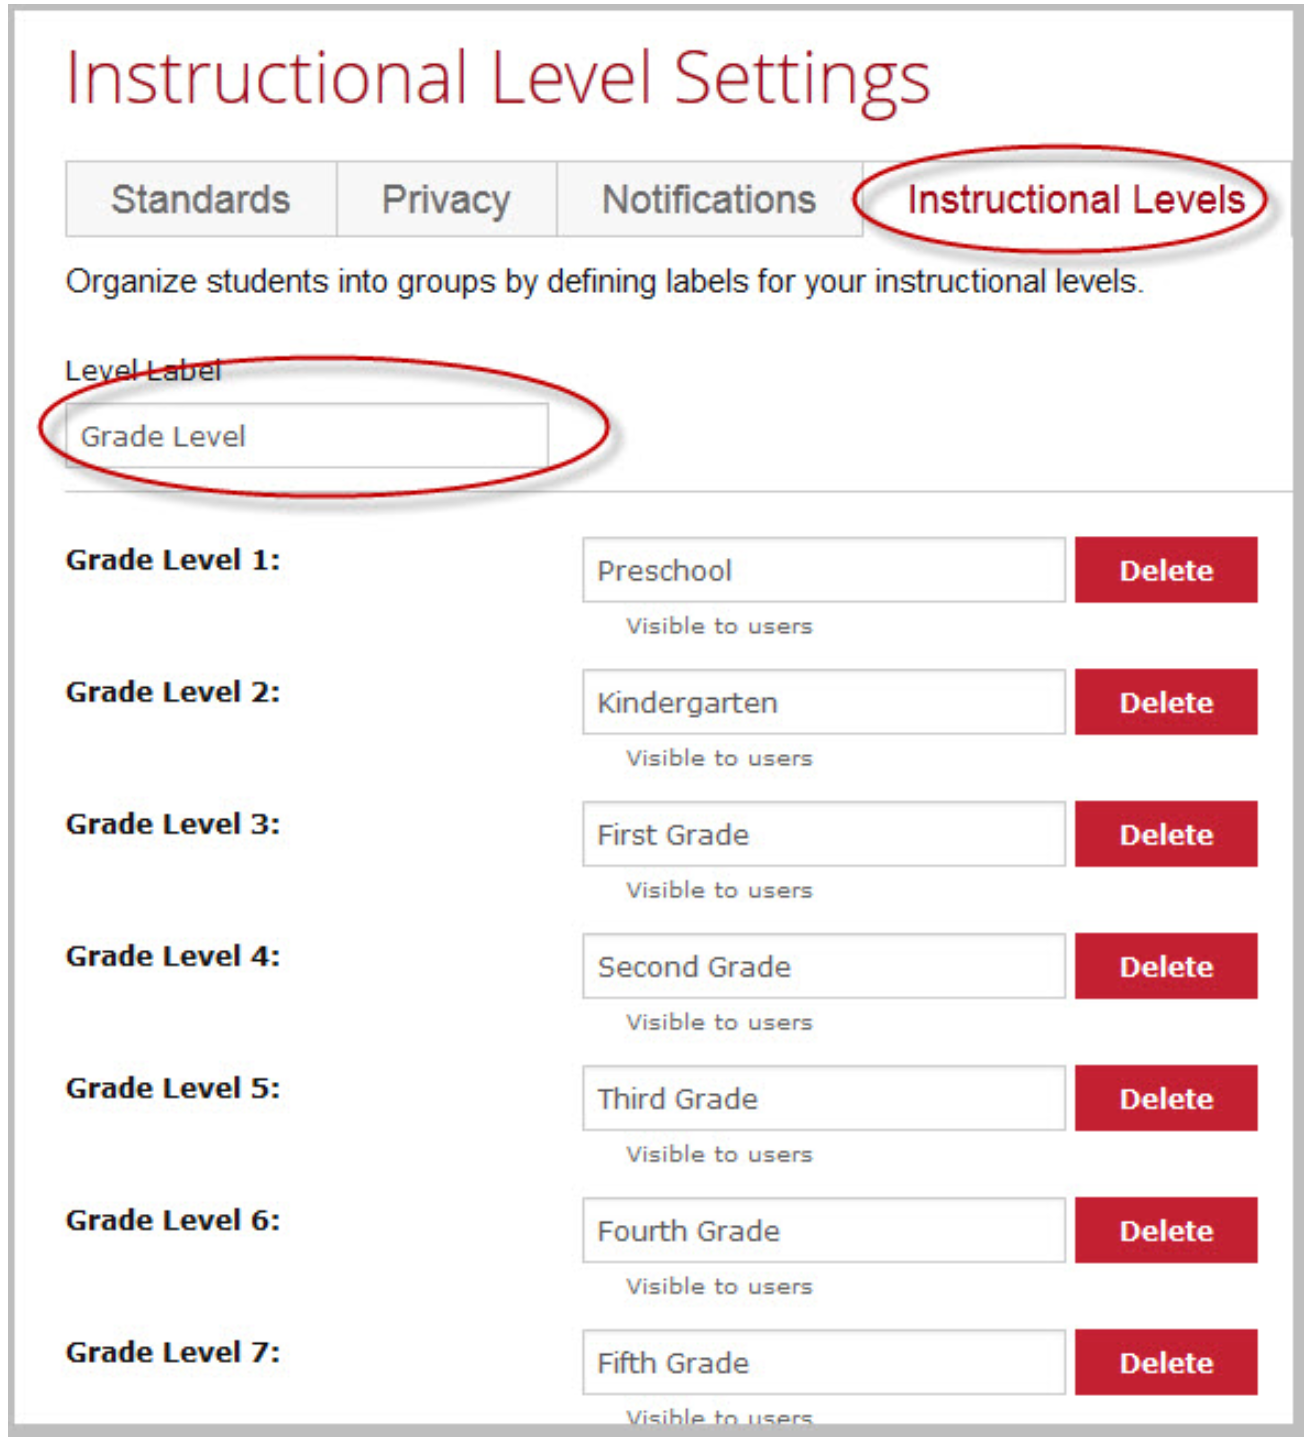 Instructional Level Settings